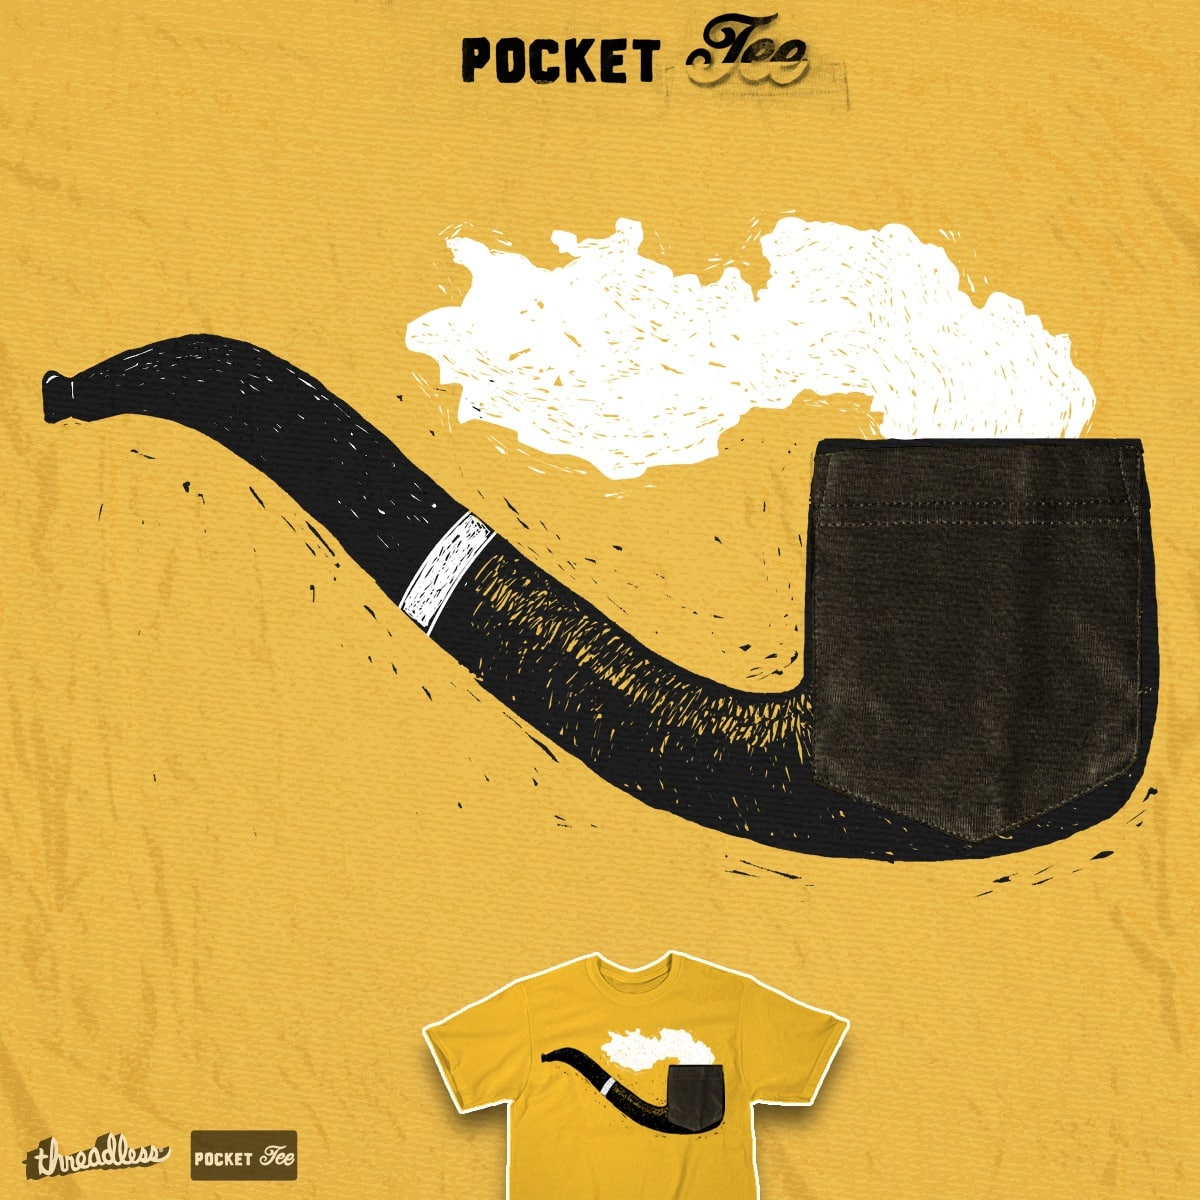 Pocket Pipe by RonanL on Threadless